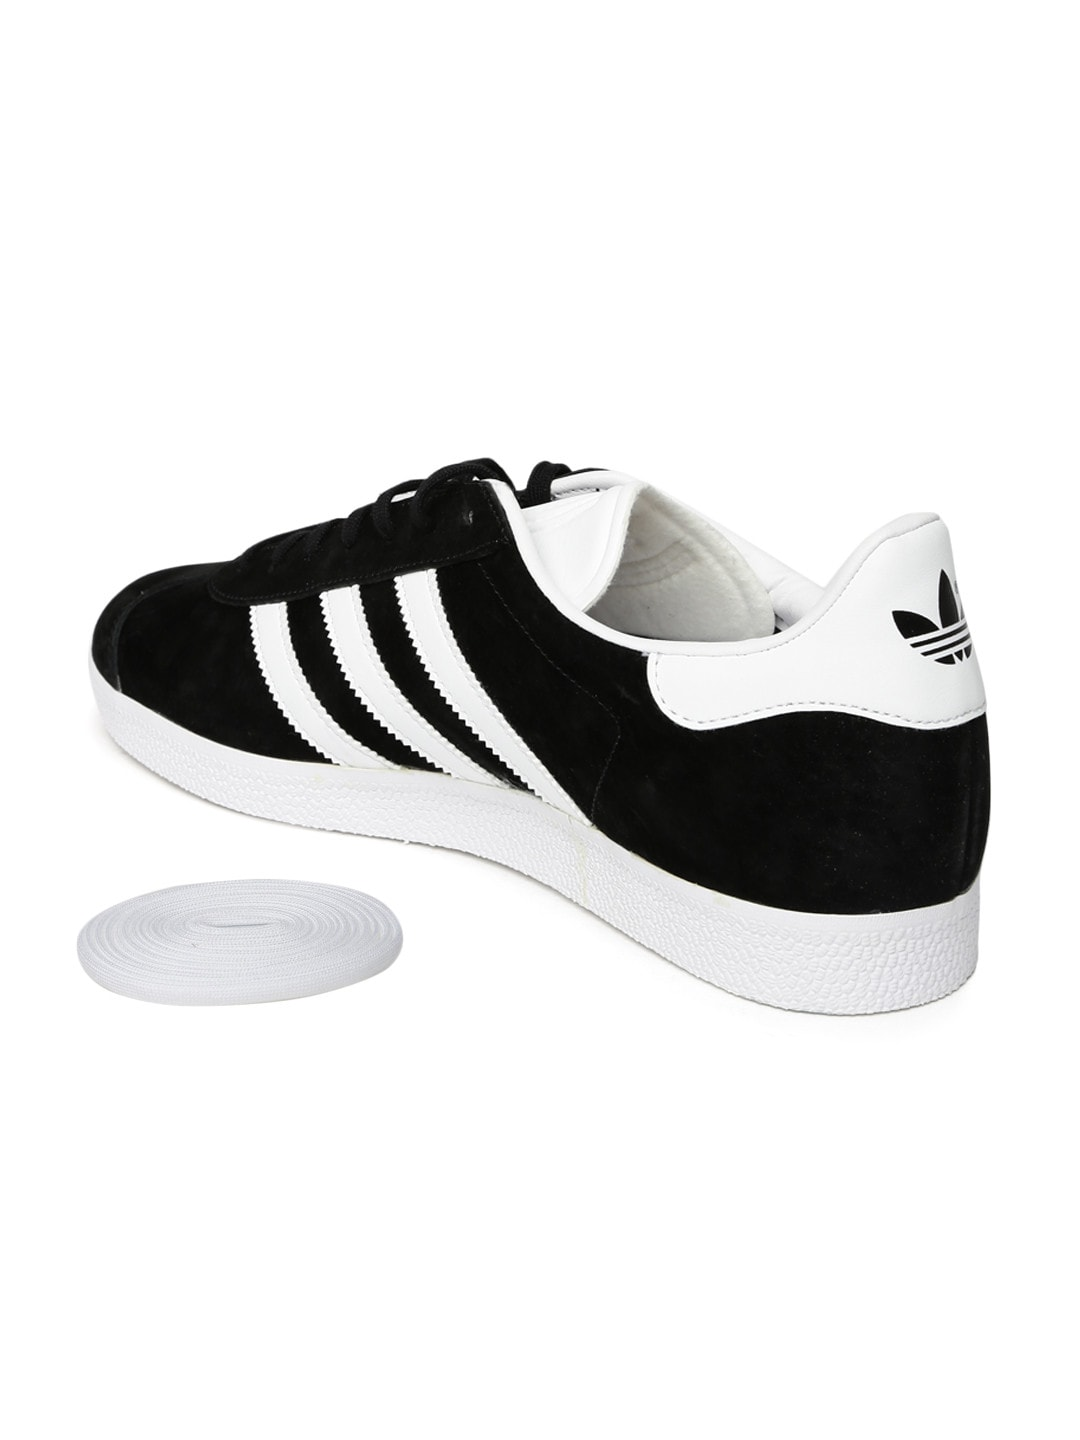 adidas cricket shoes sale india adidas gazelle off white suede